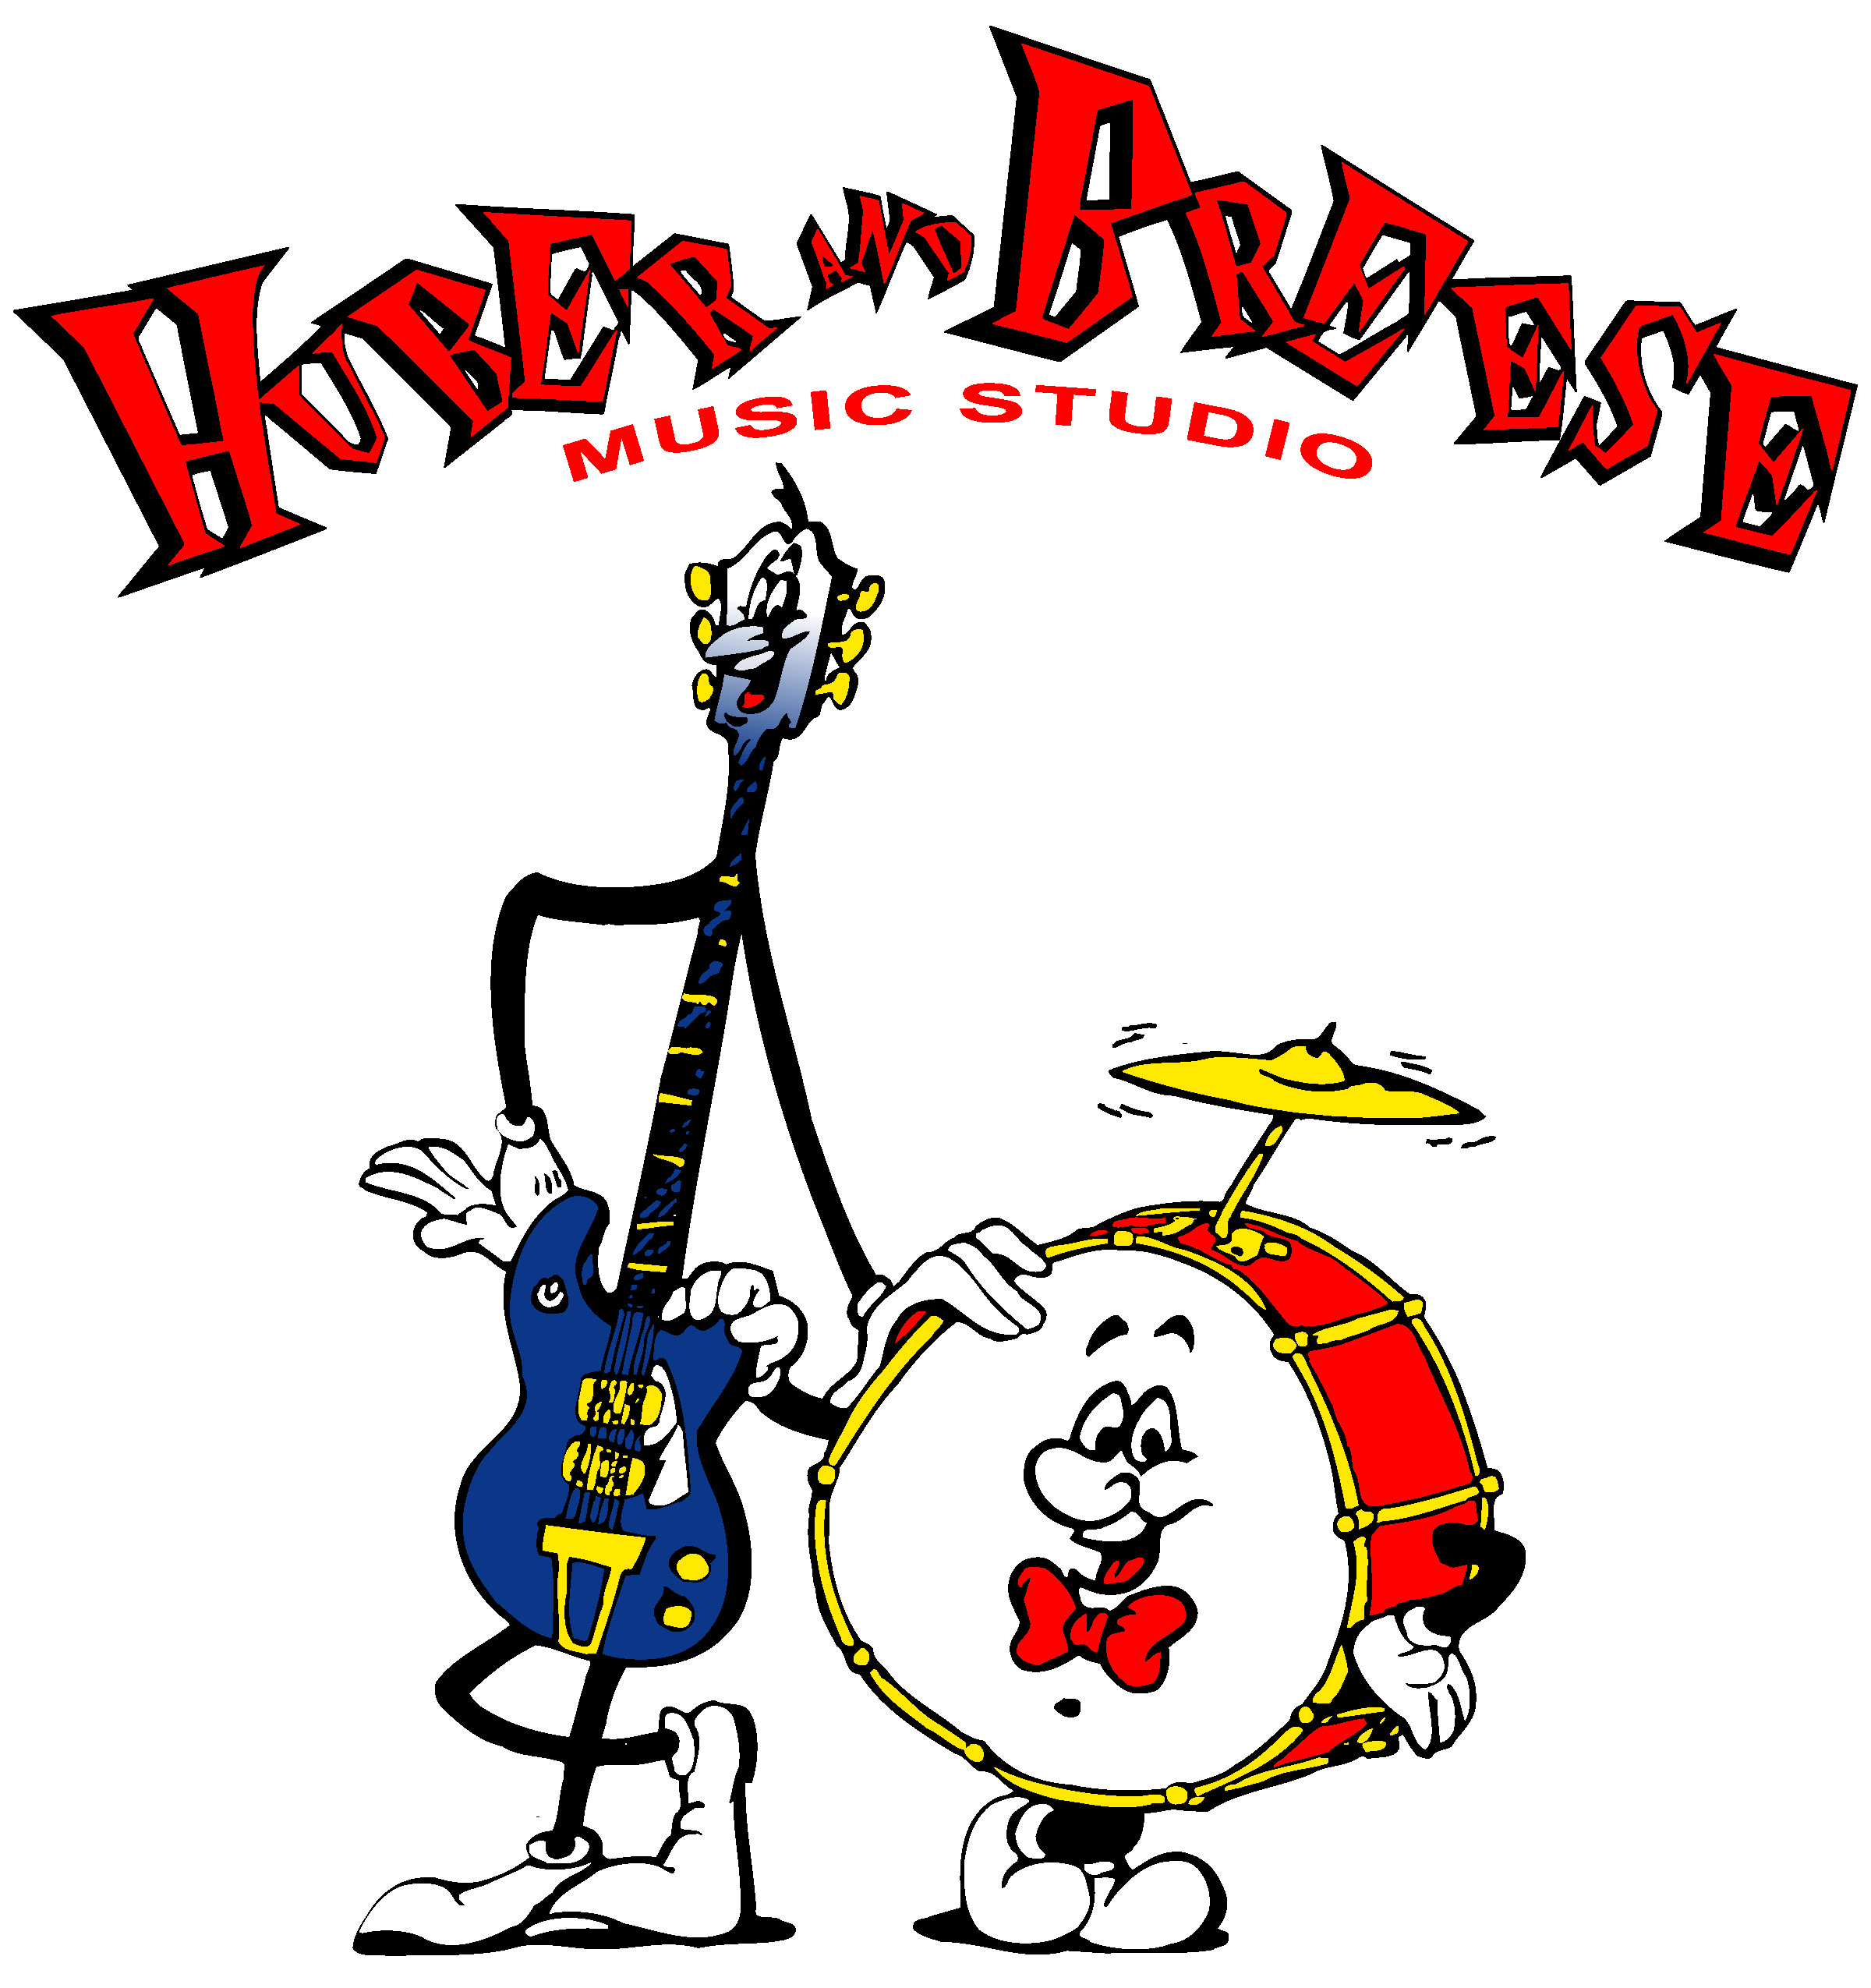 Huber & Breese Music Studio